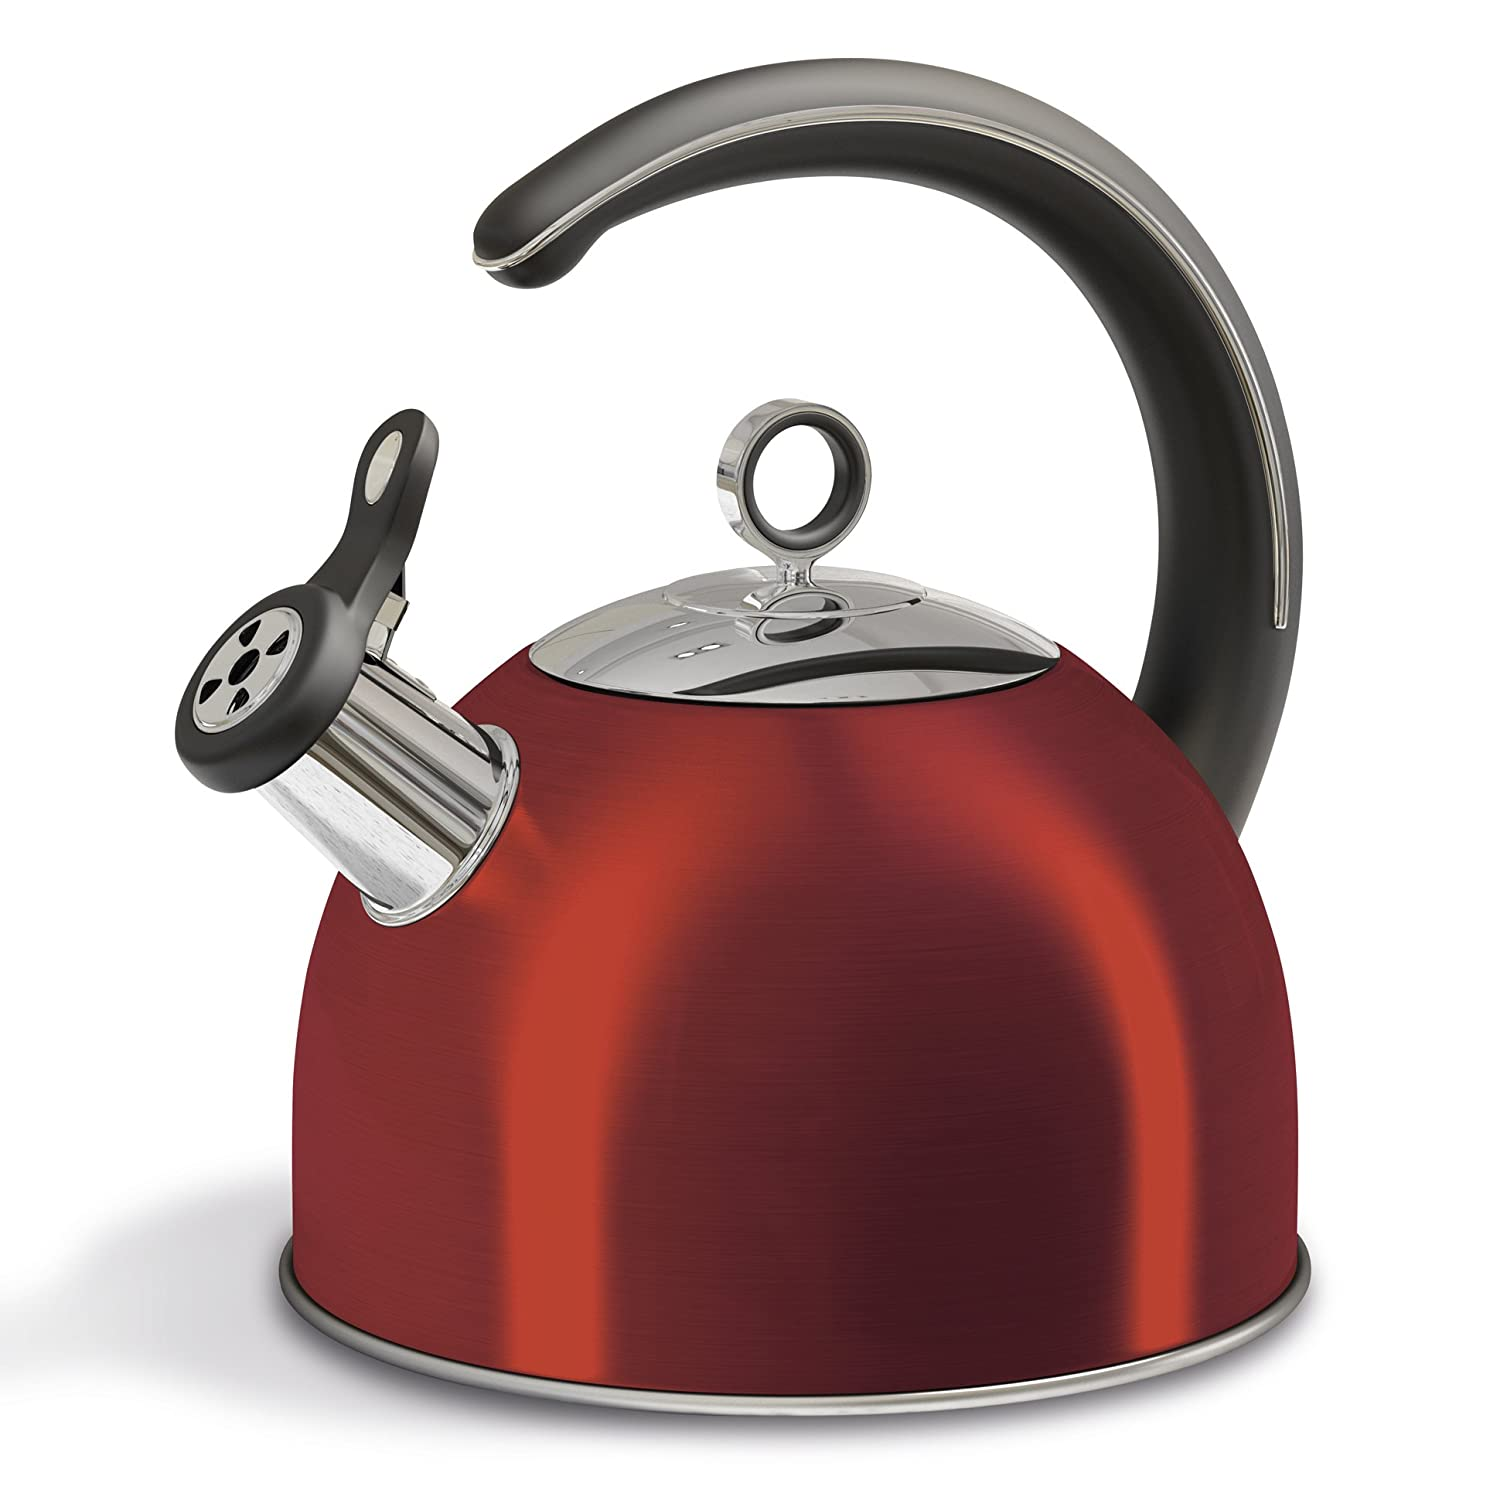 Traditional whistling kettle